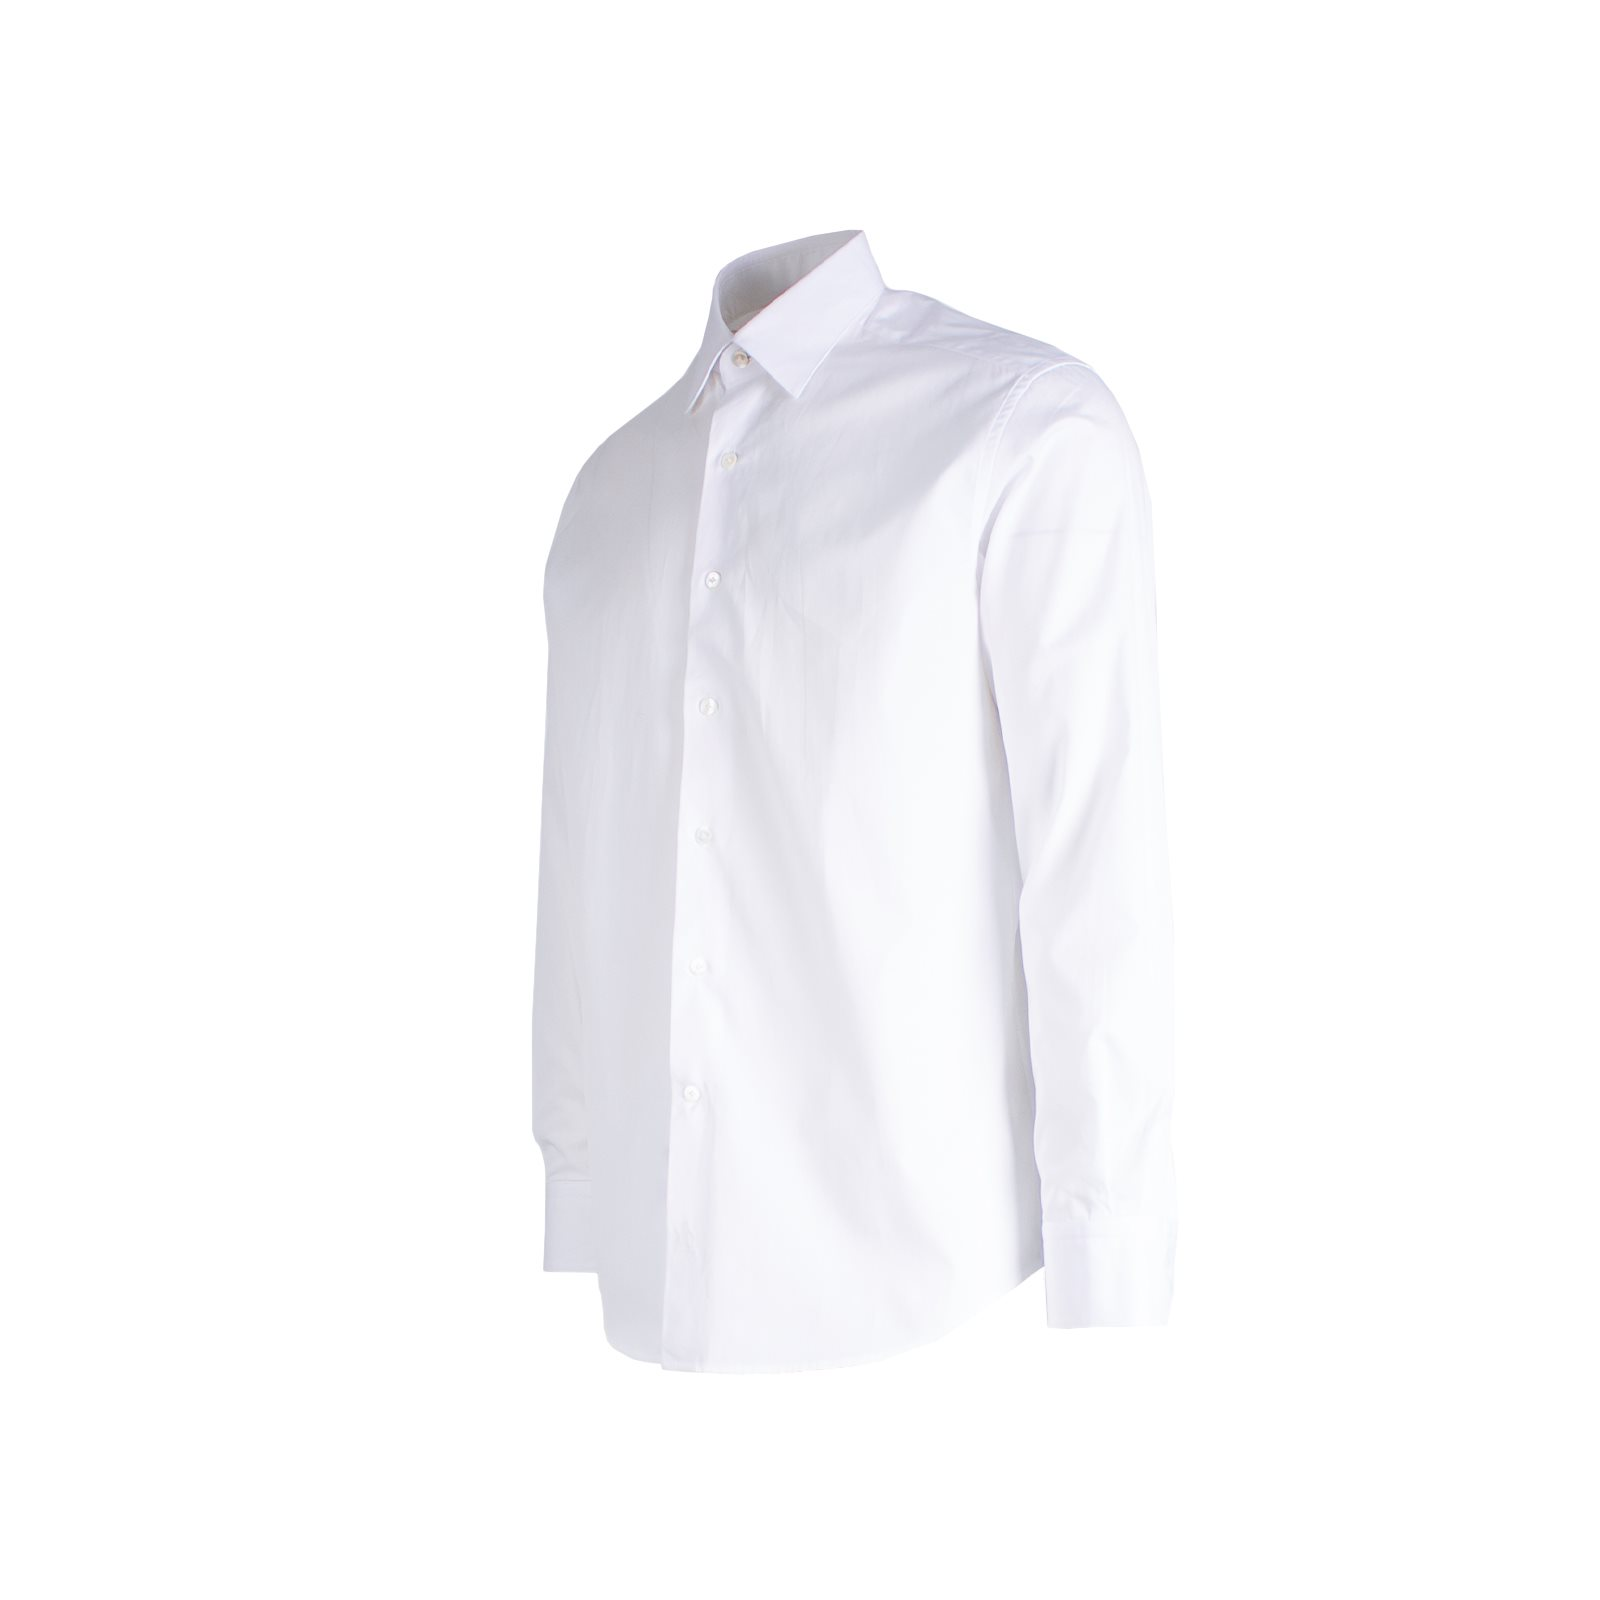 Lanvin Paris Shirt 2